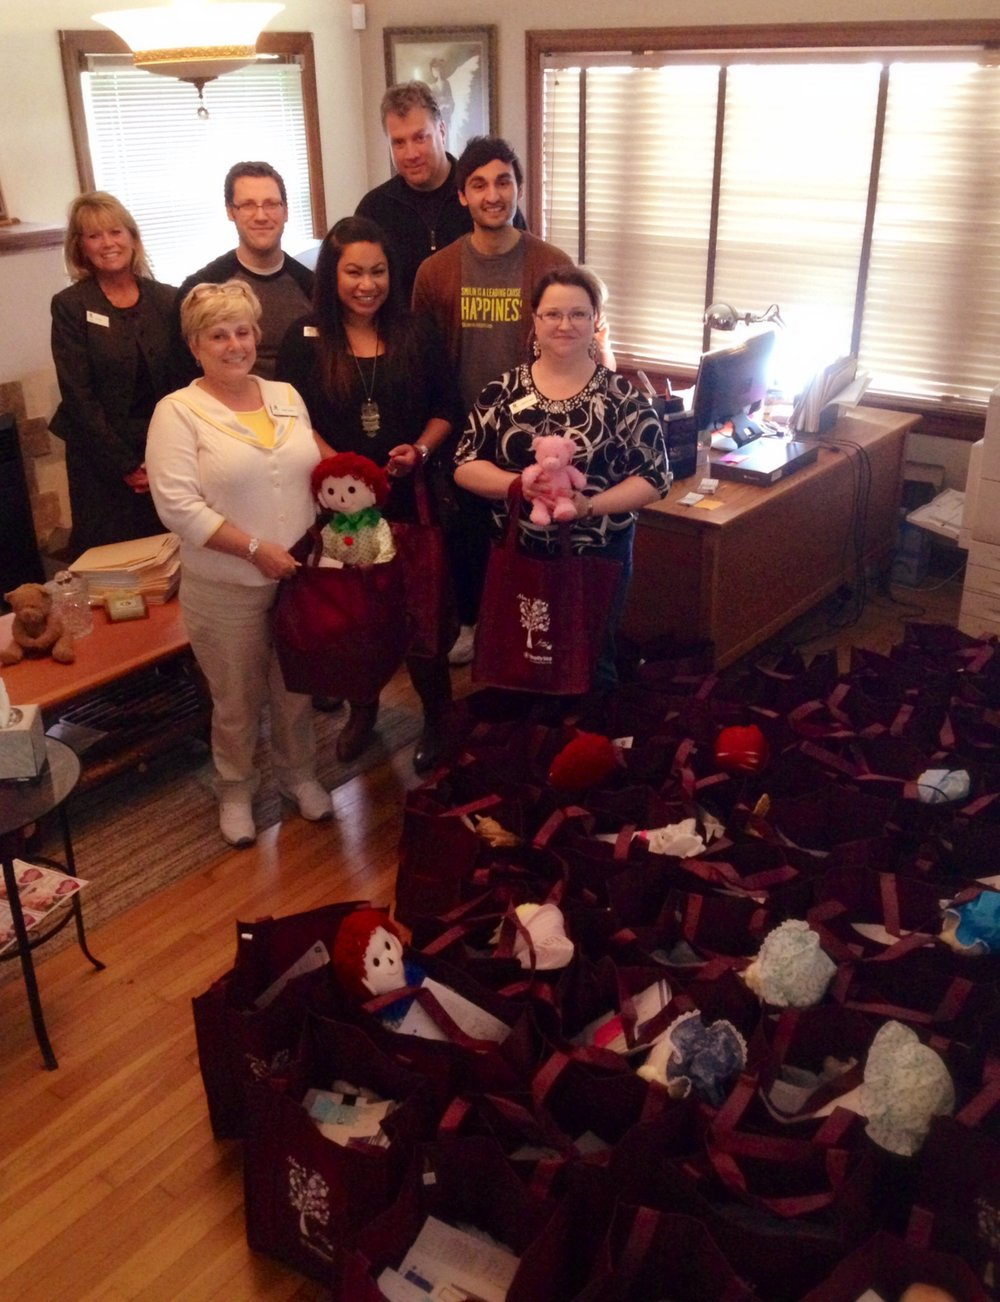 June - Umpqua Bank Volunteers & Rogers High School Key ClubUmpqua bank employees have volunteered with us a number of times over the past few years. A new group joined us a few weeks ago to help assemble charts, address envelopes, and organize items to put together gift bags for new moms. These guys are amazing workers. They always complete the tasks we give them in record time! This visit, they also put together over 60 Welcome Home bags for new moms.